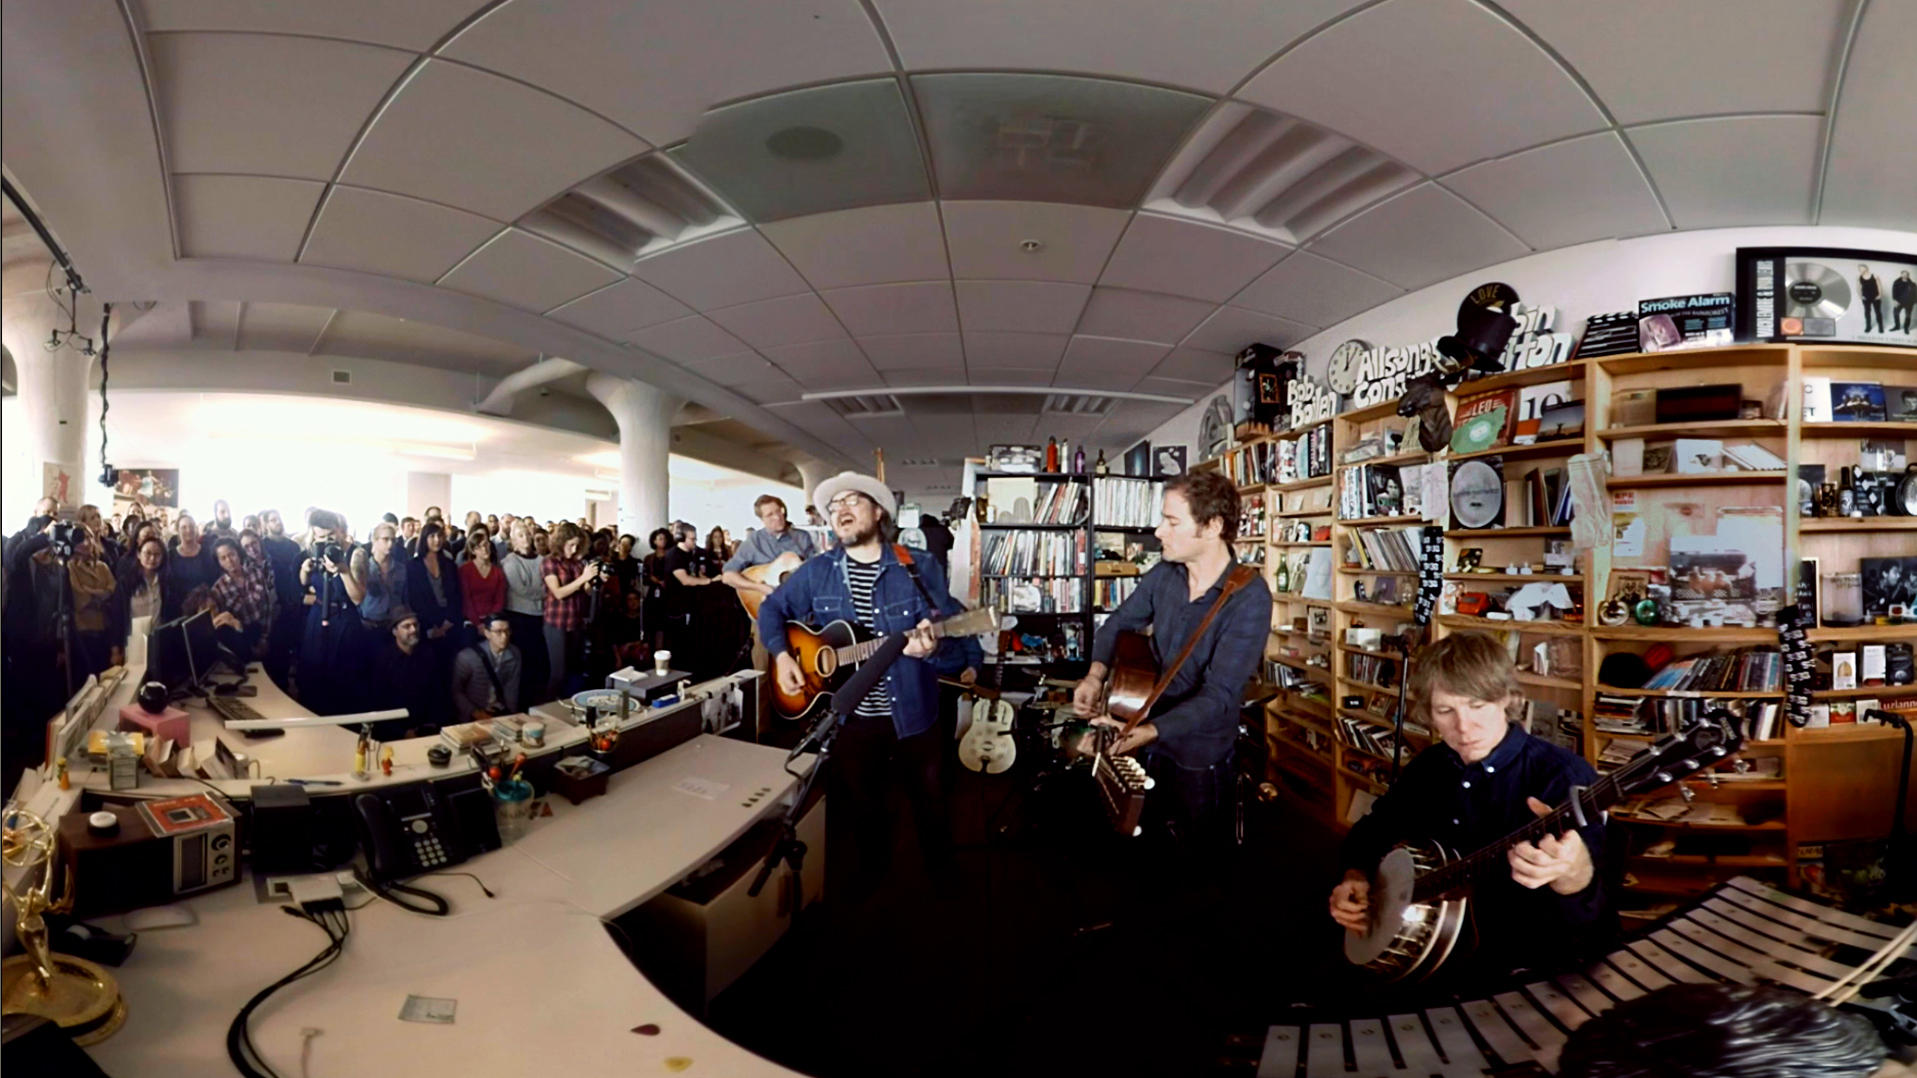 Wilco Played At NPR Musics Tiny Desk We Filmed It In 360 Degrees